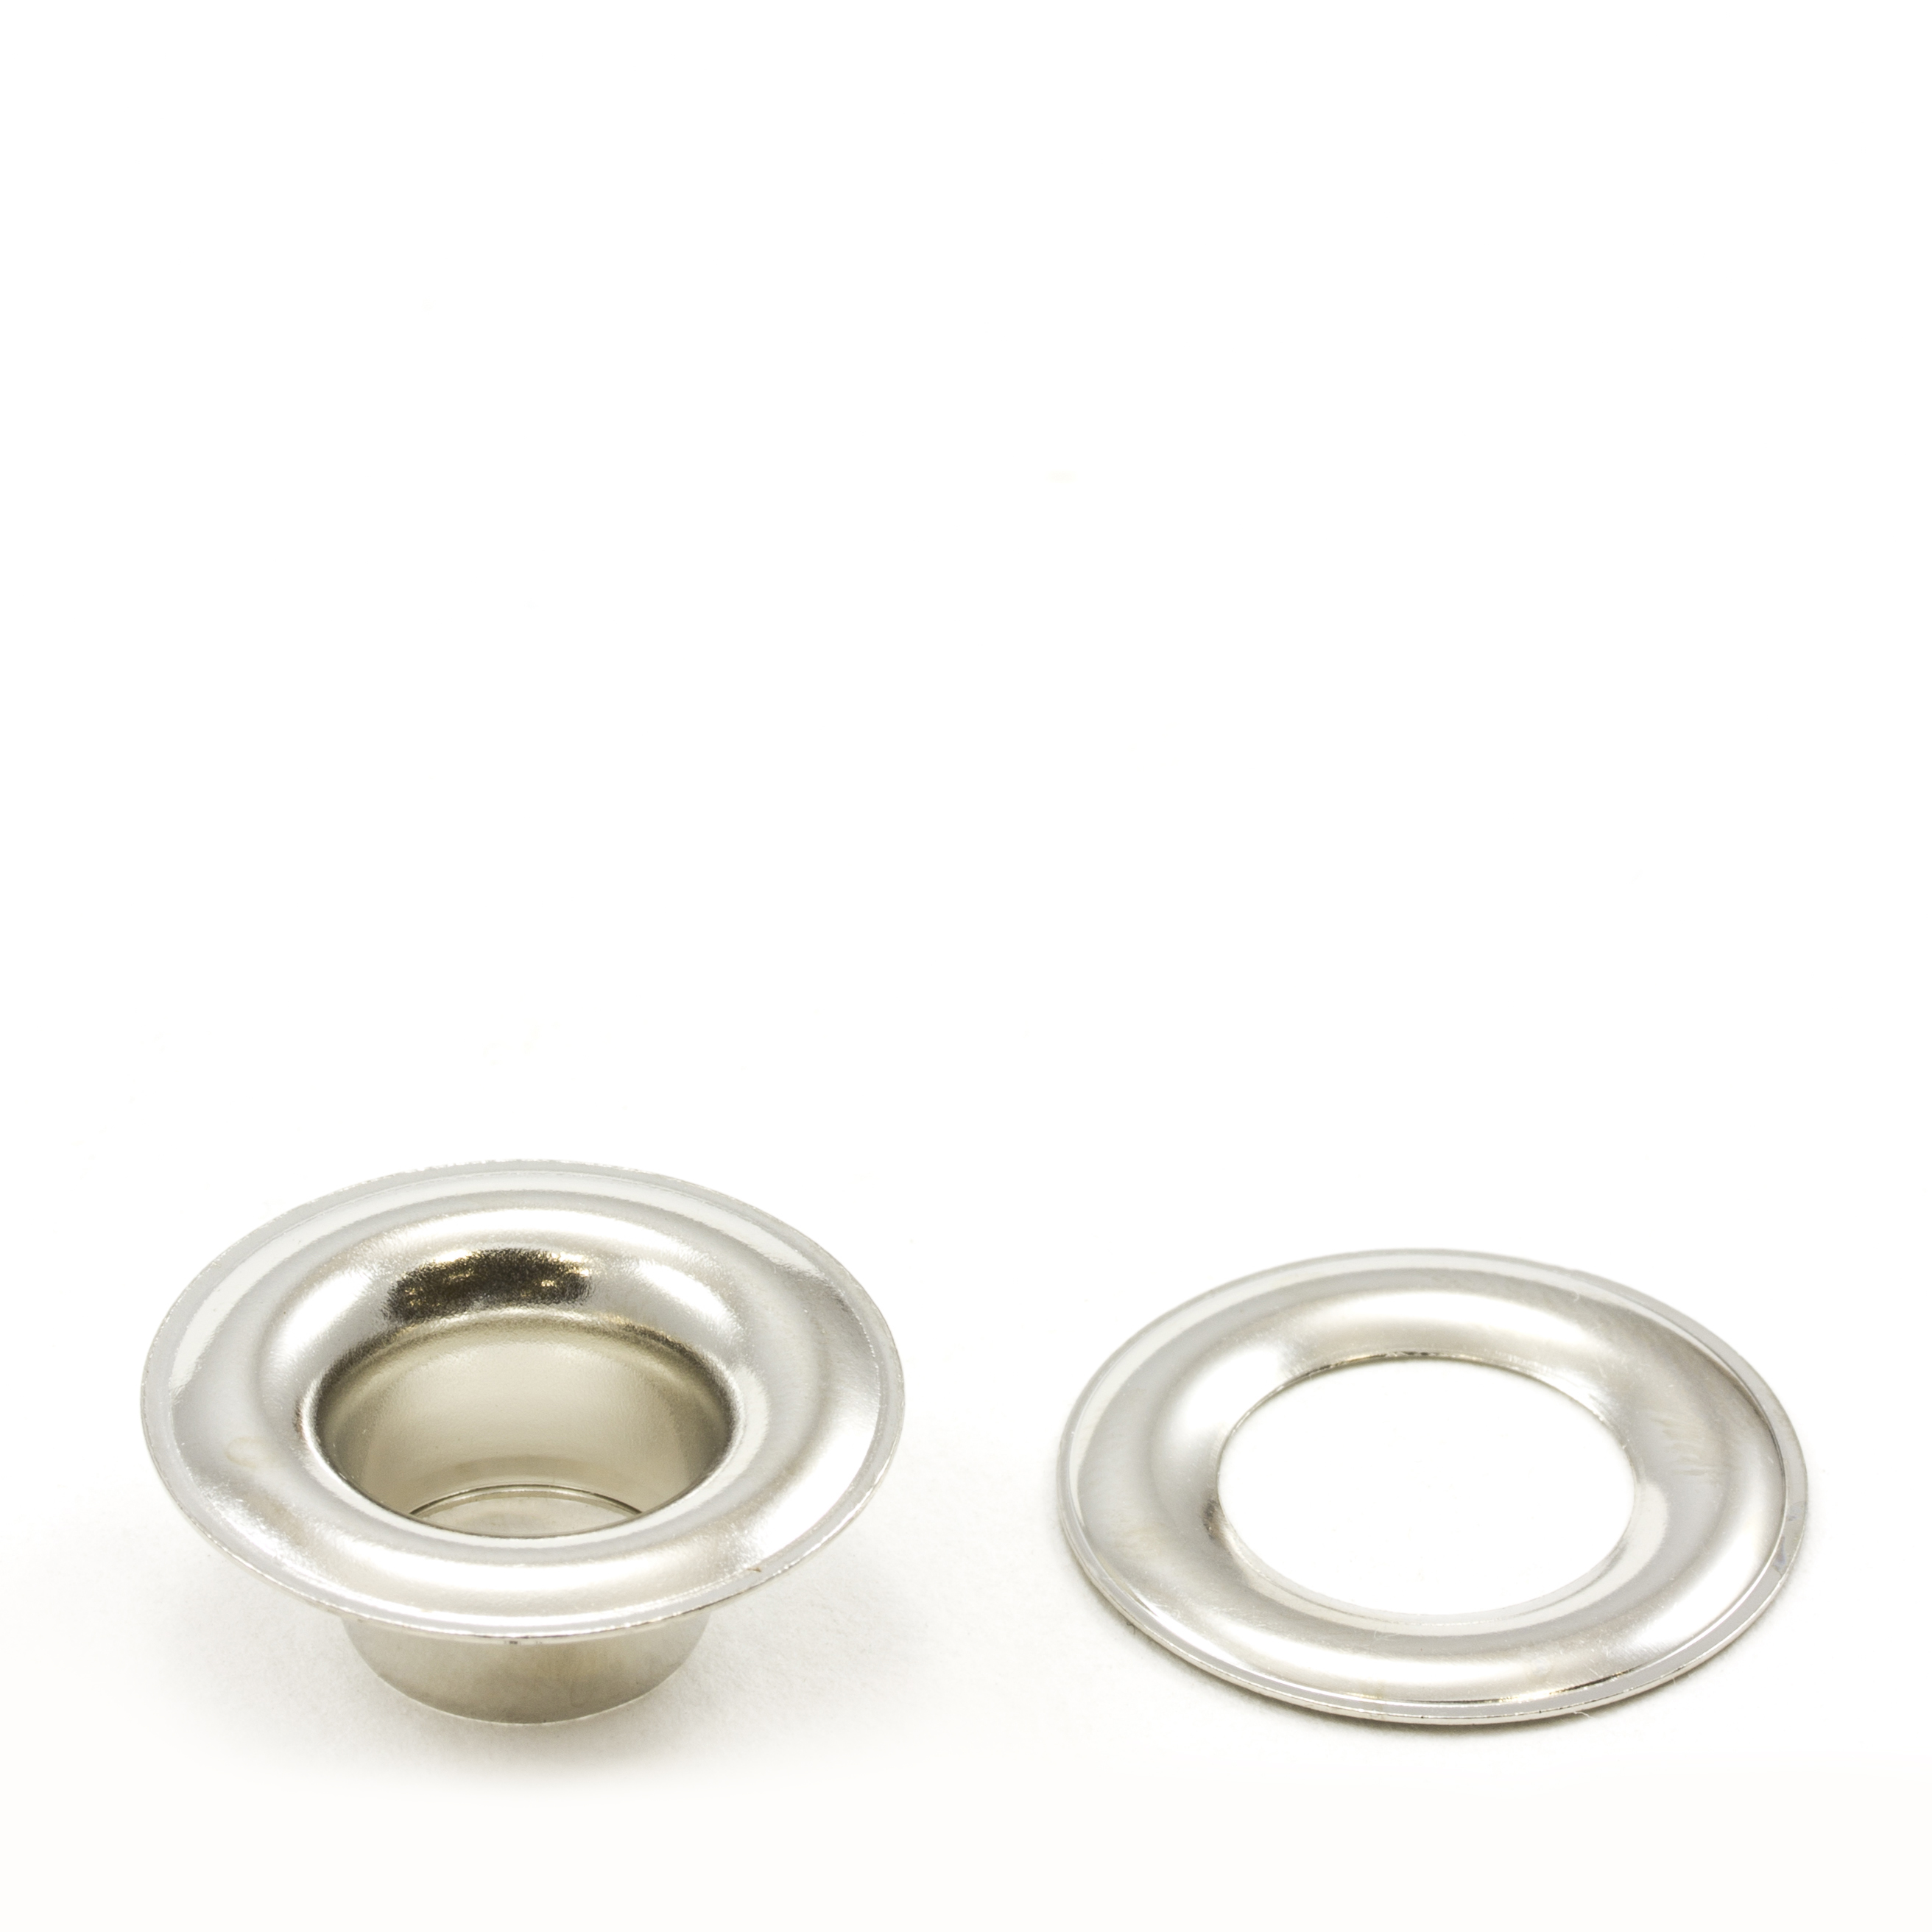 Thumbnail Grommet with Plain Washer #4 Brass Nickel Plated 1/2 1